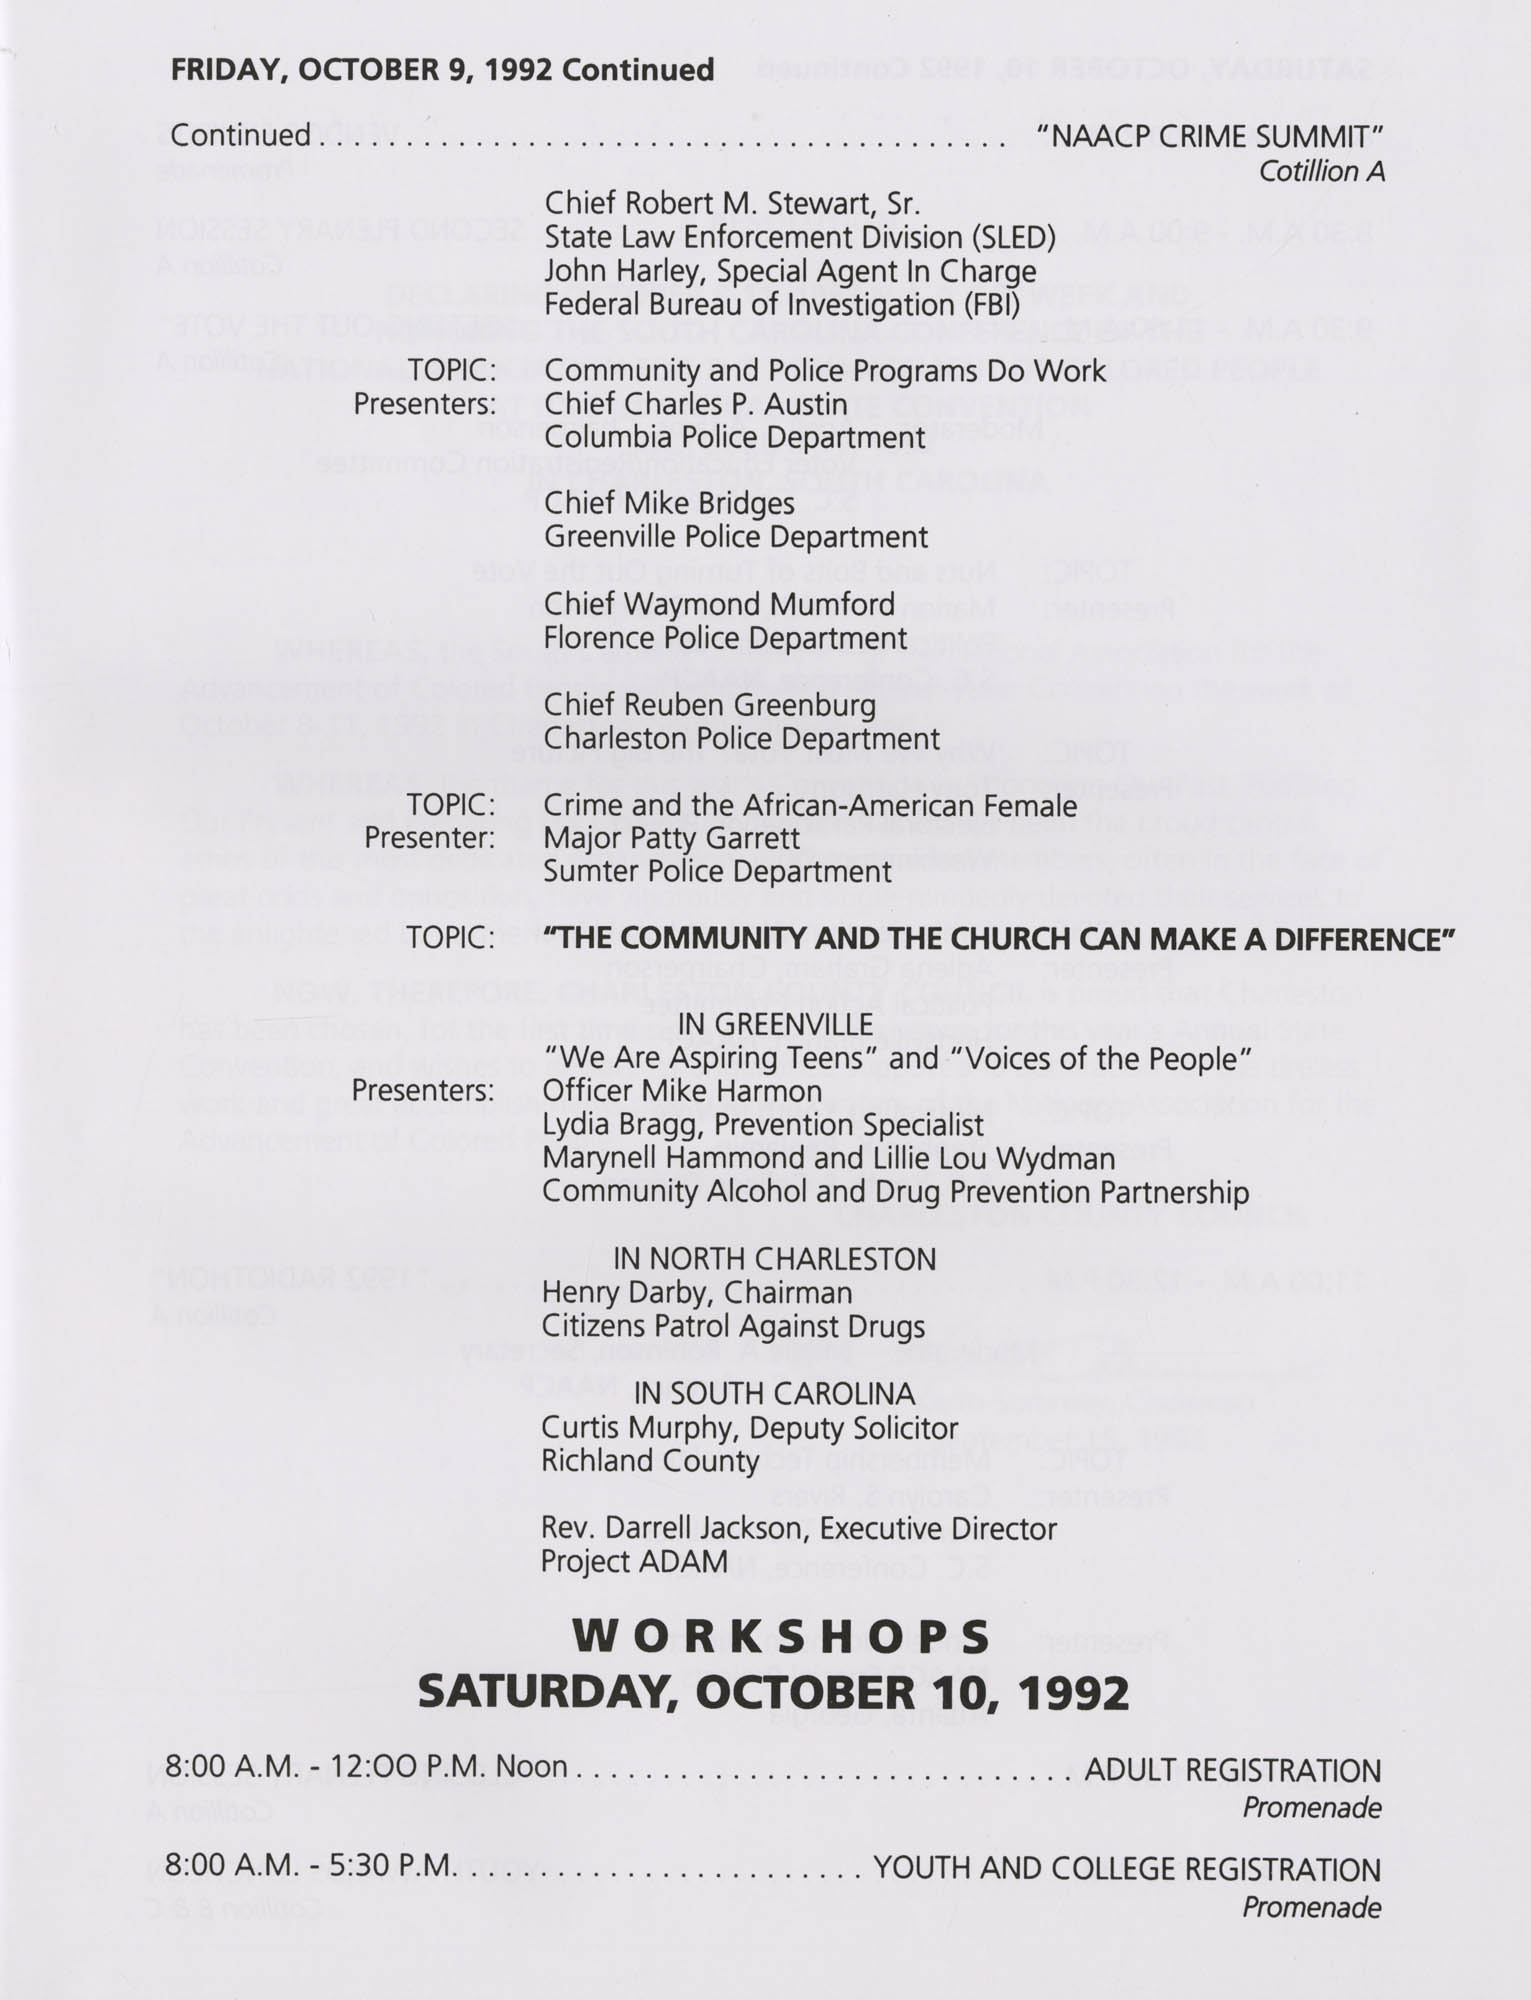 Charleston Branch of the NAACP 51st Annual State Convention Program, Page 7